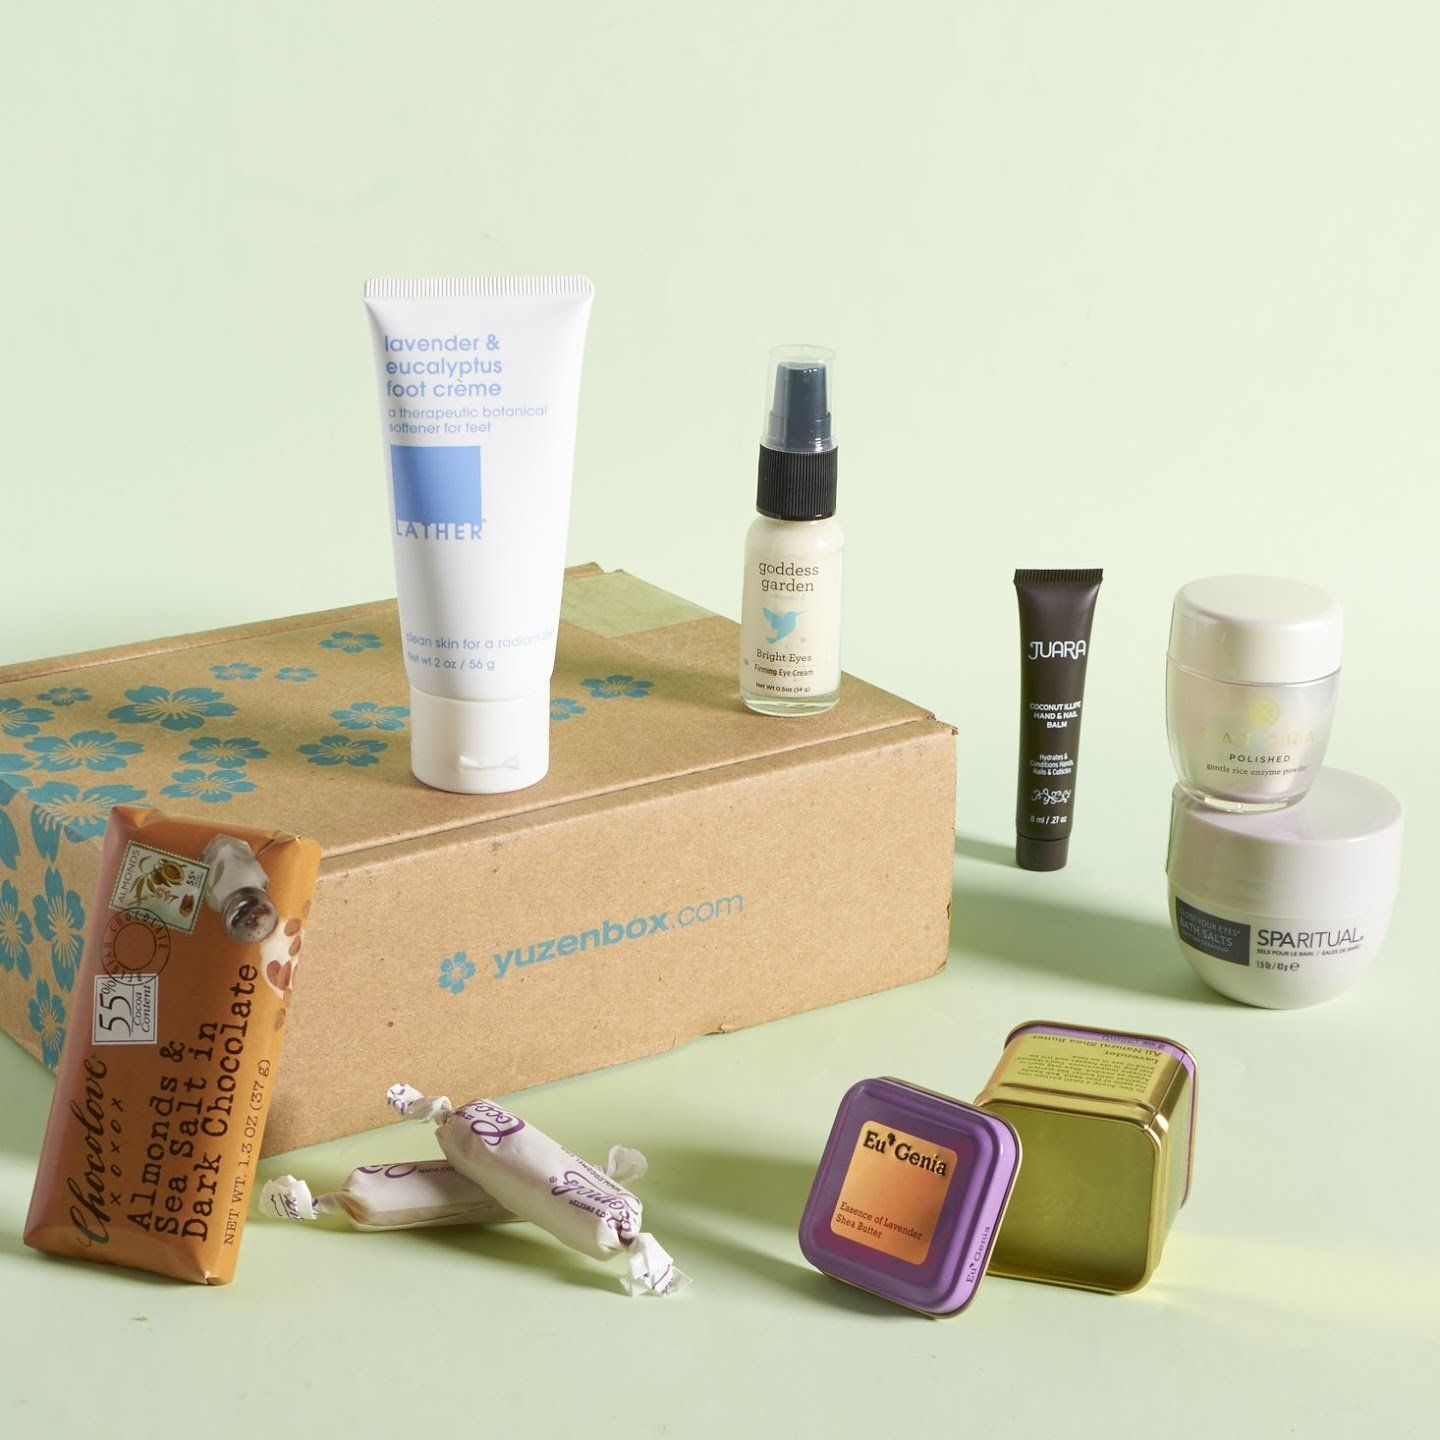 yuzenboxnovember0004 Monthly beauty subscriptions